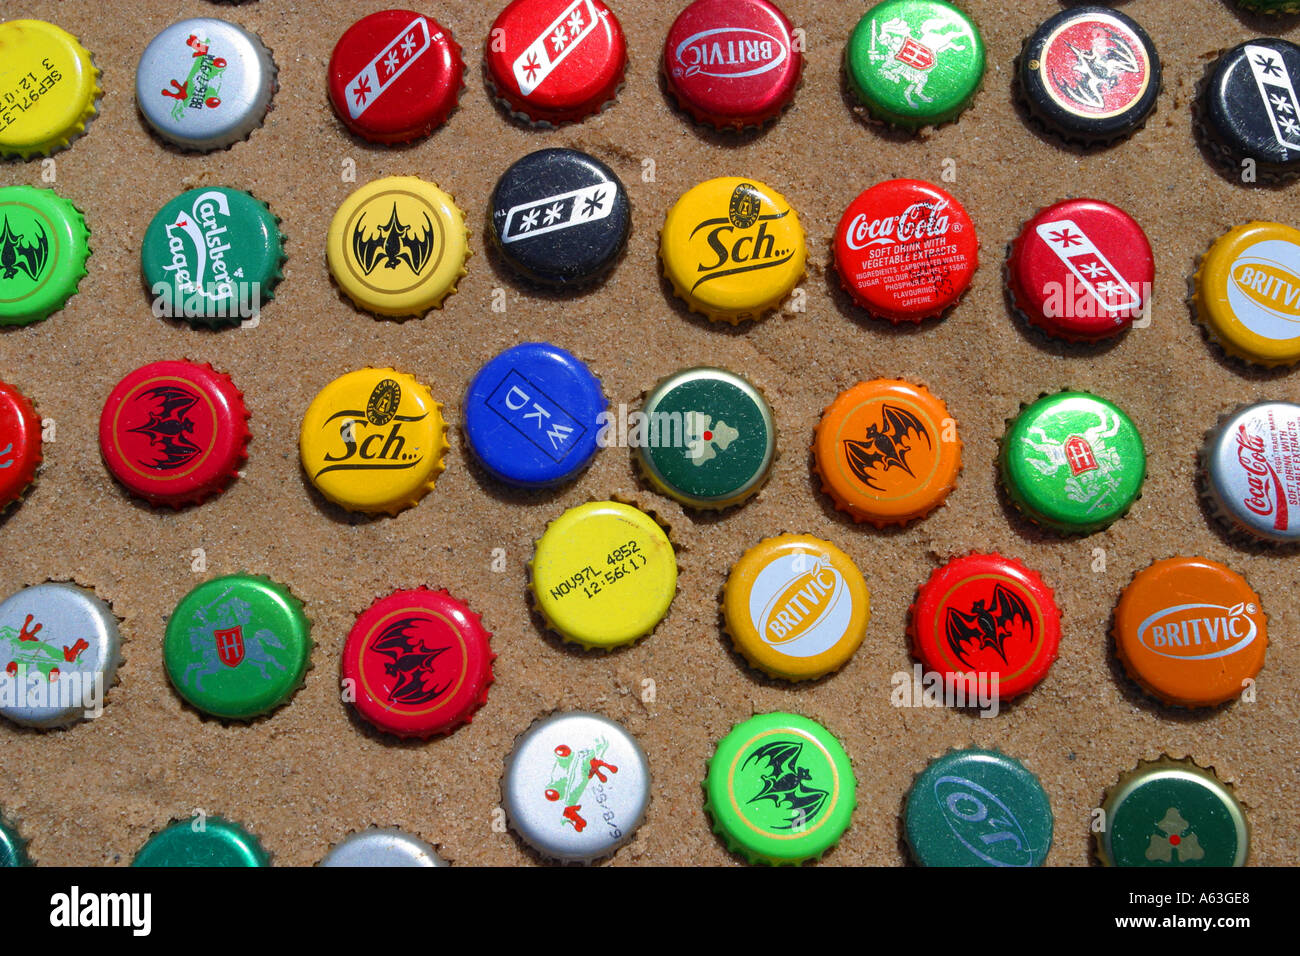 Multi coloured beer bottle tops displayed on sand as beach art - Stock Image